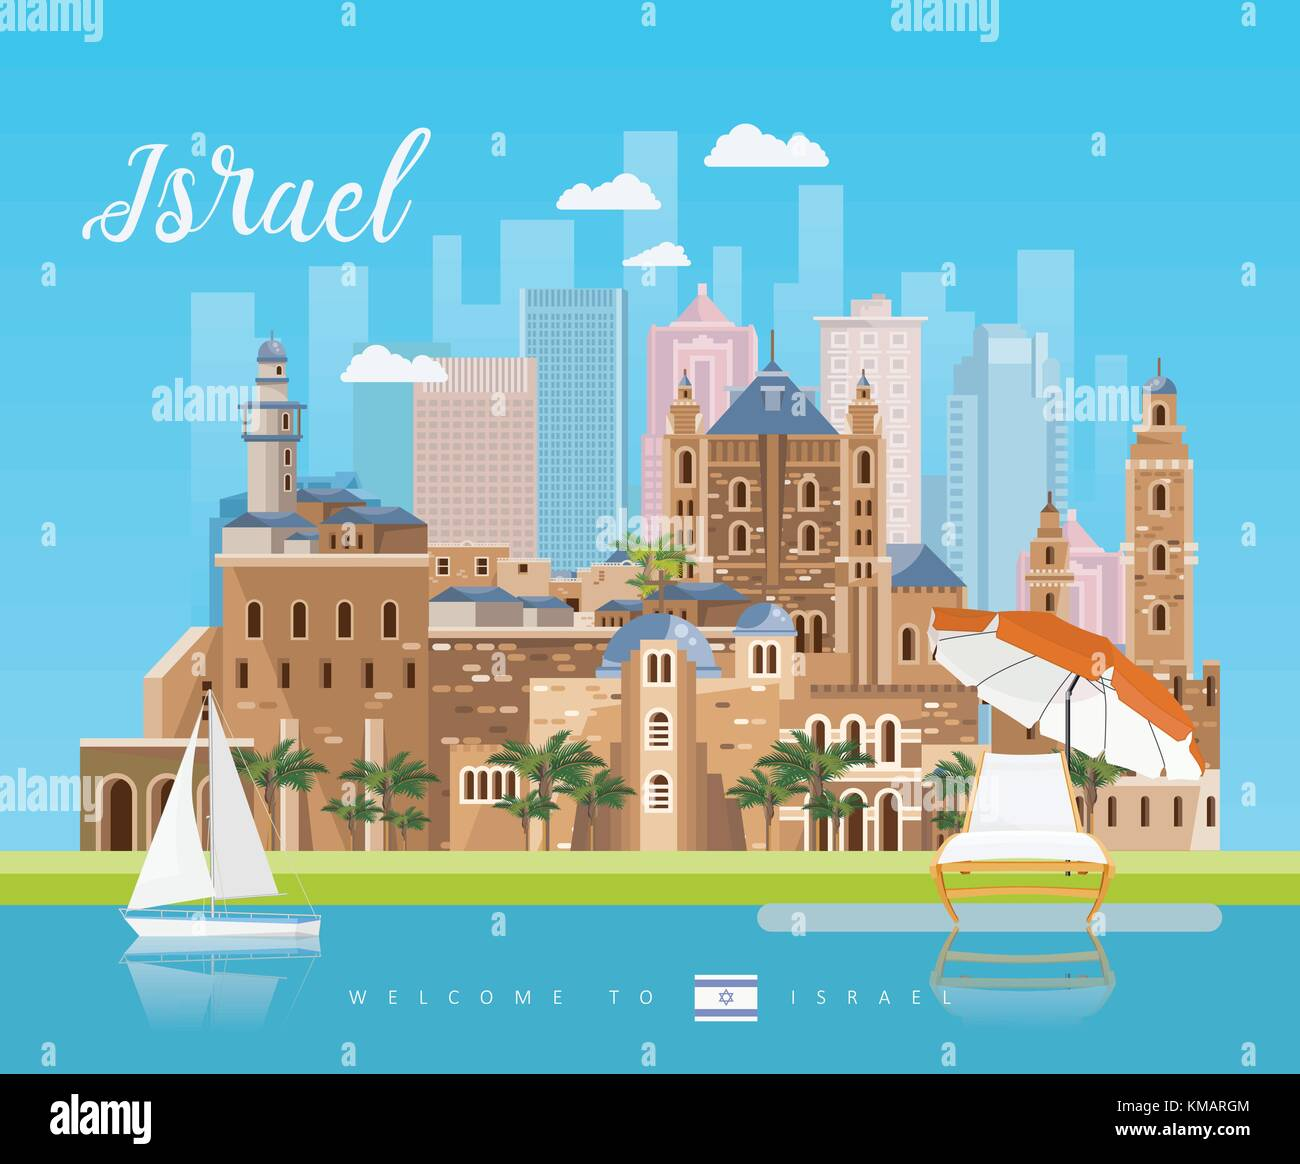 Israel Vector Banner With Jewish Landmarks Travel Poster In Flat